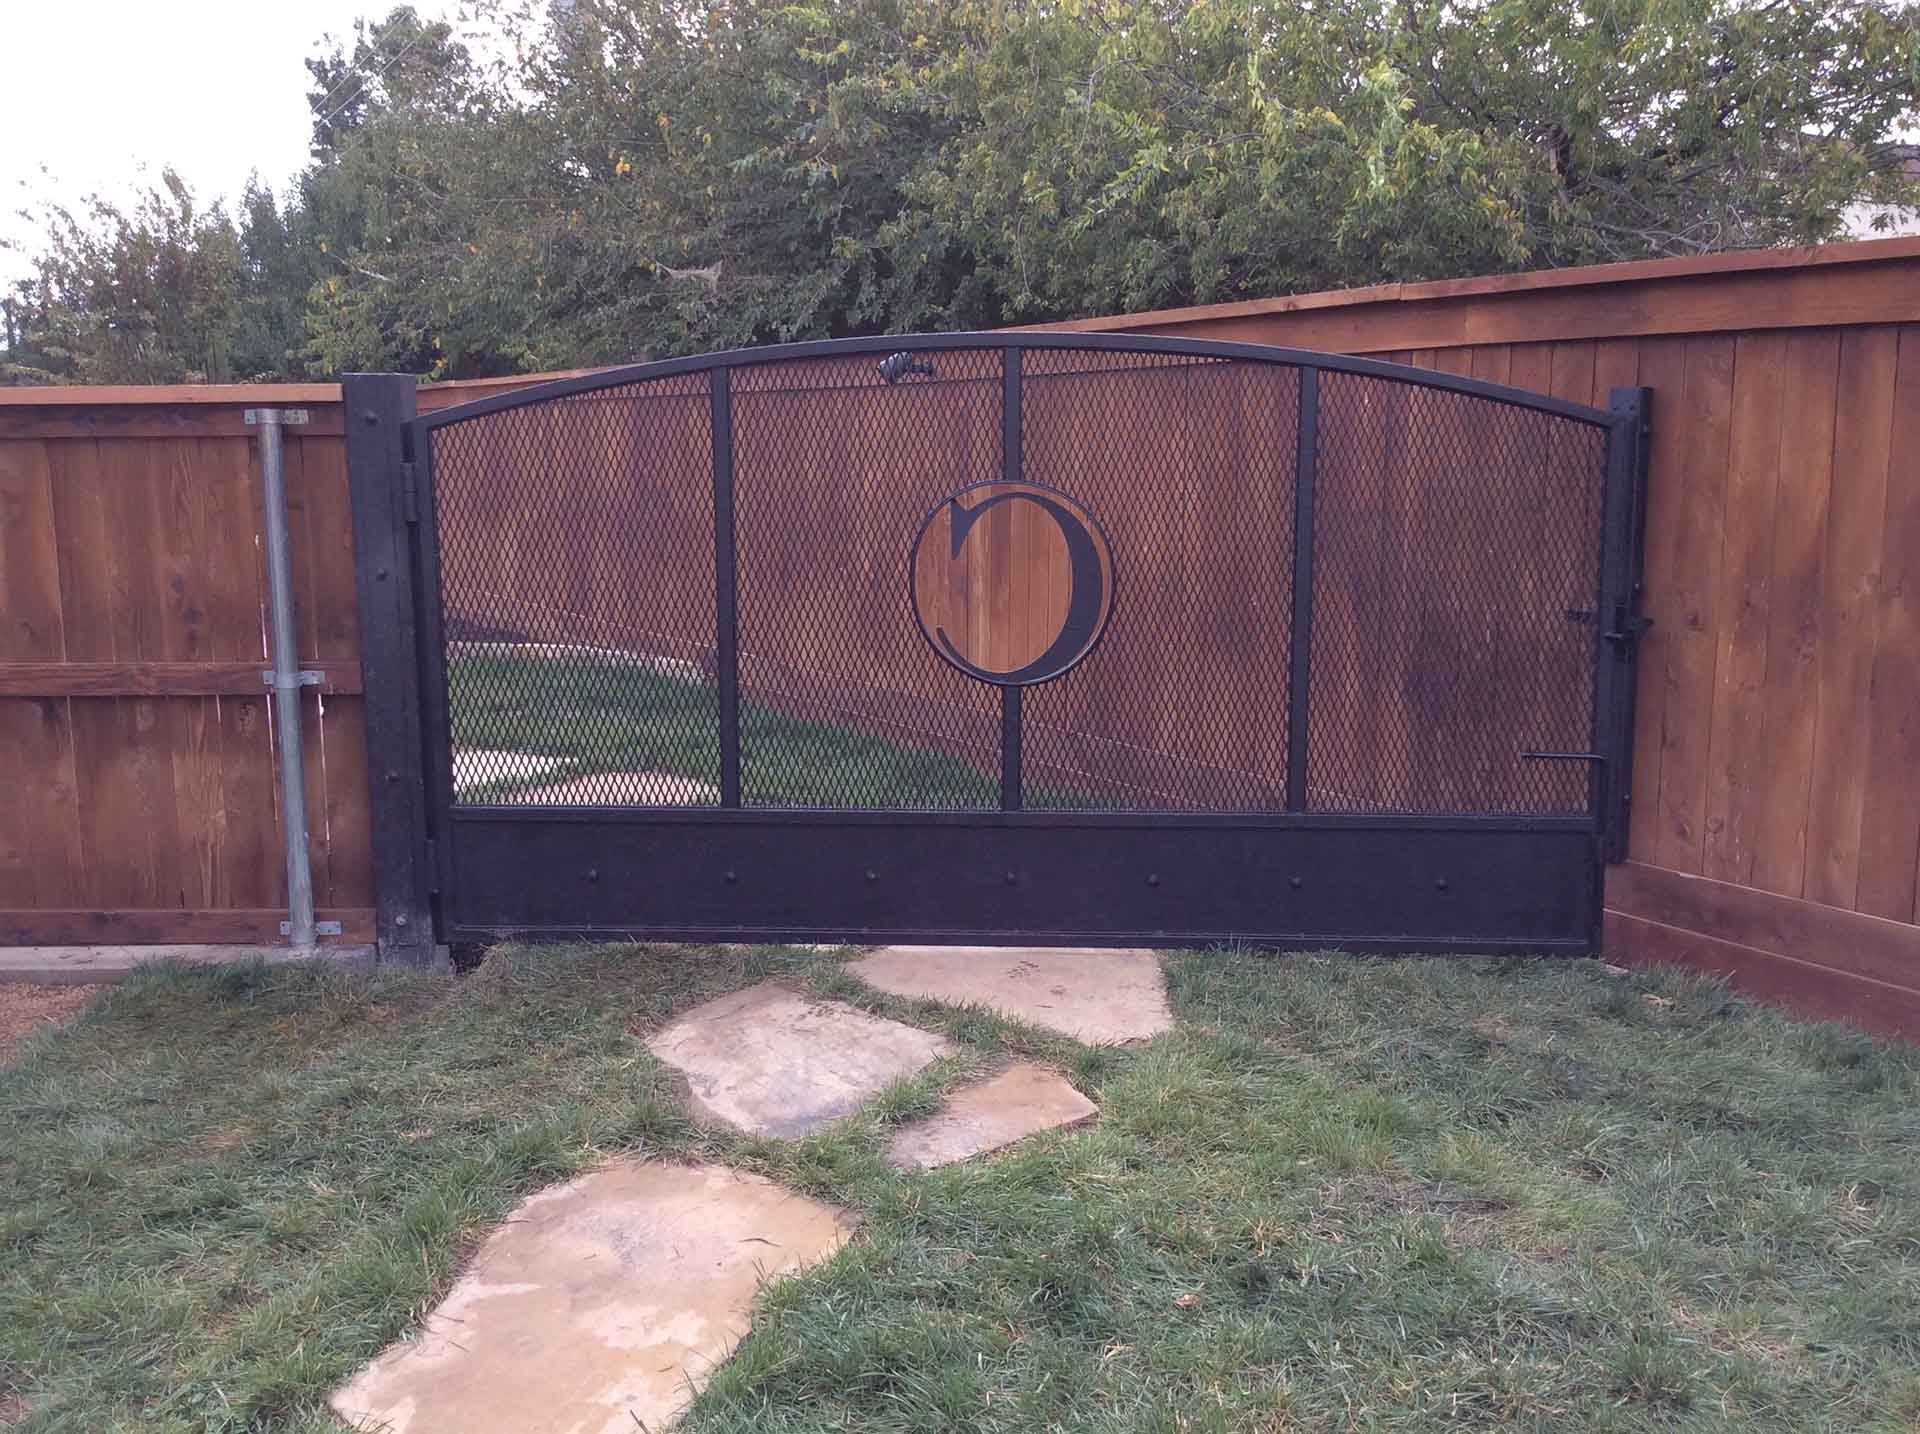 Top rated wrought iron gate fabricator specializing in iron fence, metal stairs railing, modern stair railing, decorative iron gate, ornamental iron stair rail,